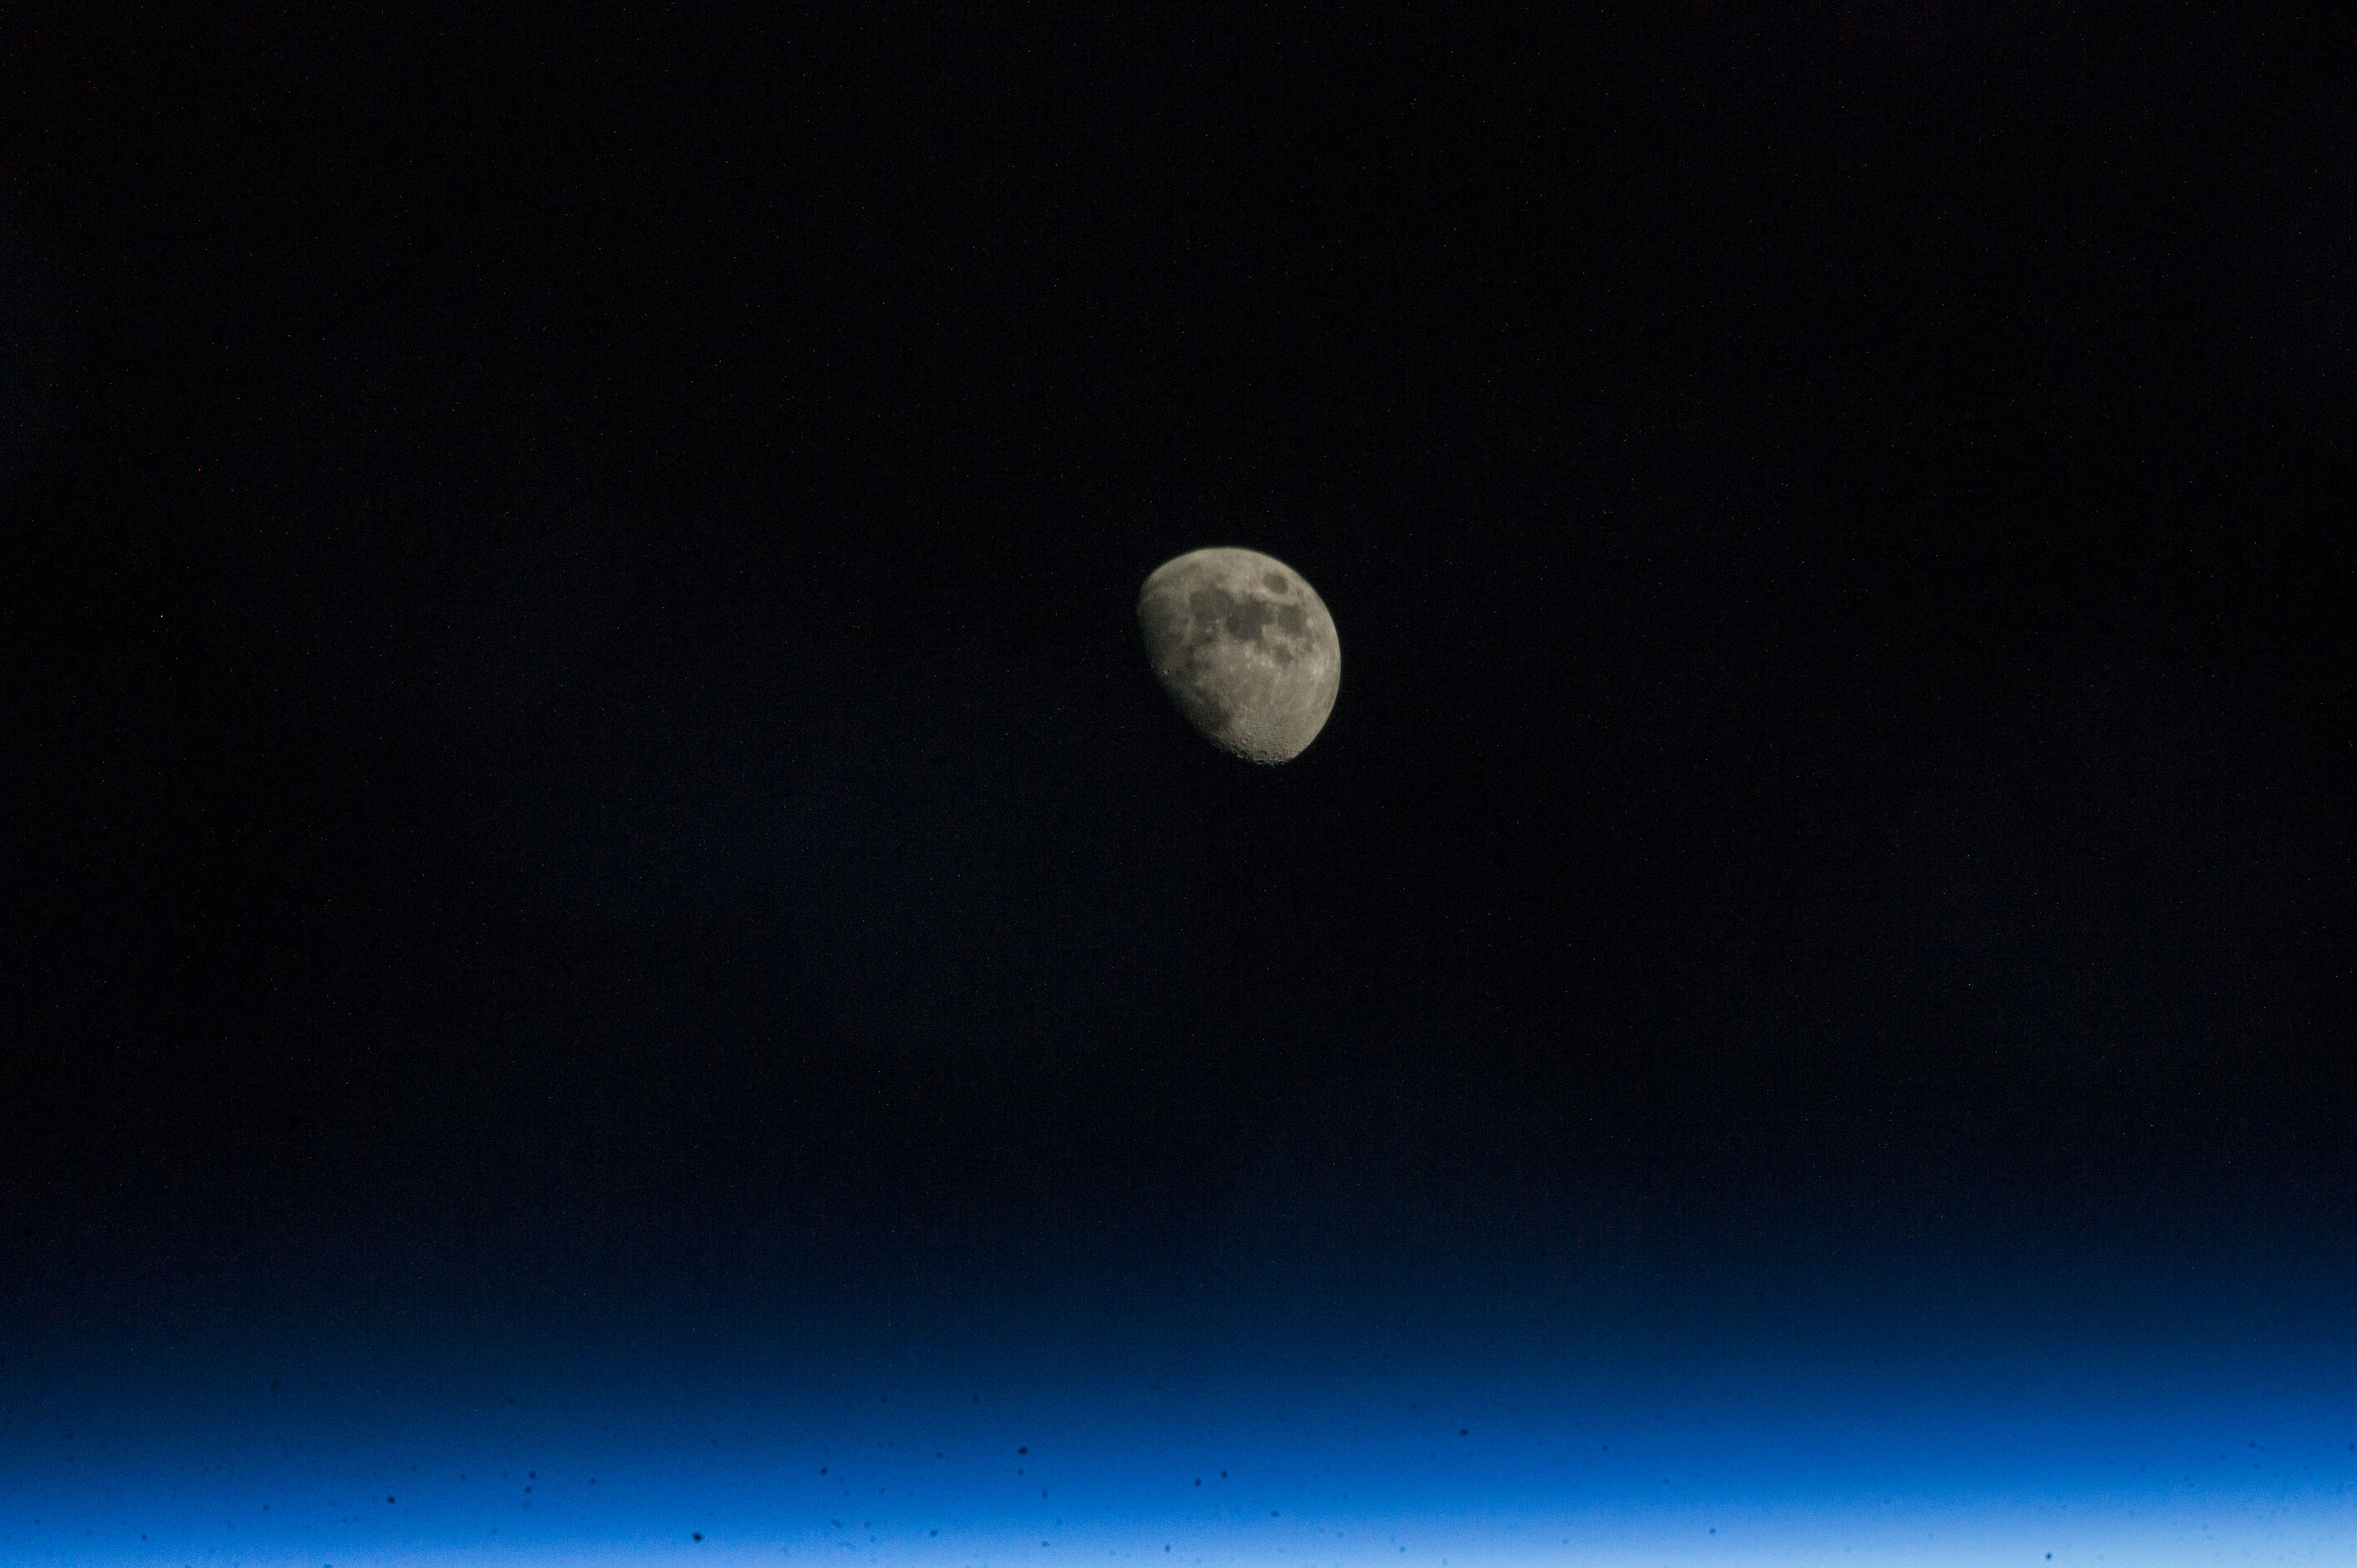 moon space station pictures - photo #13